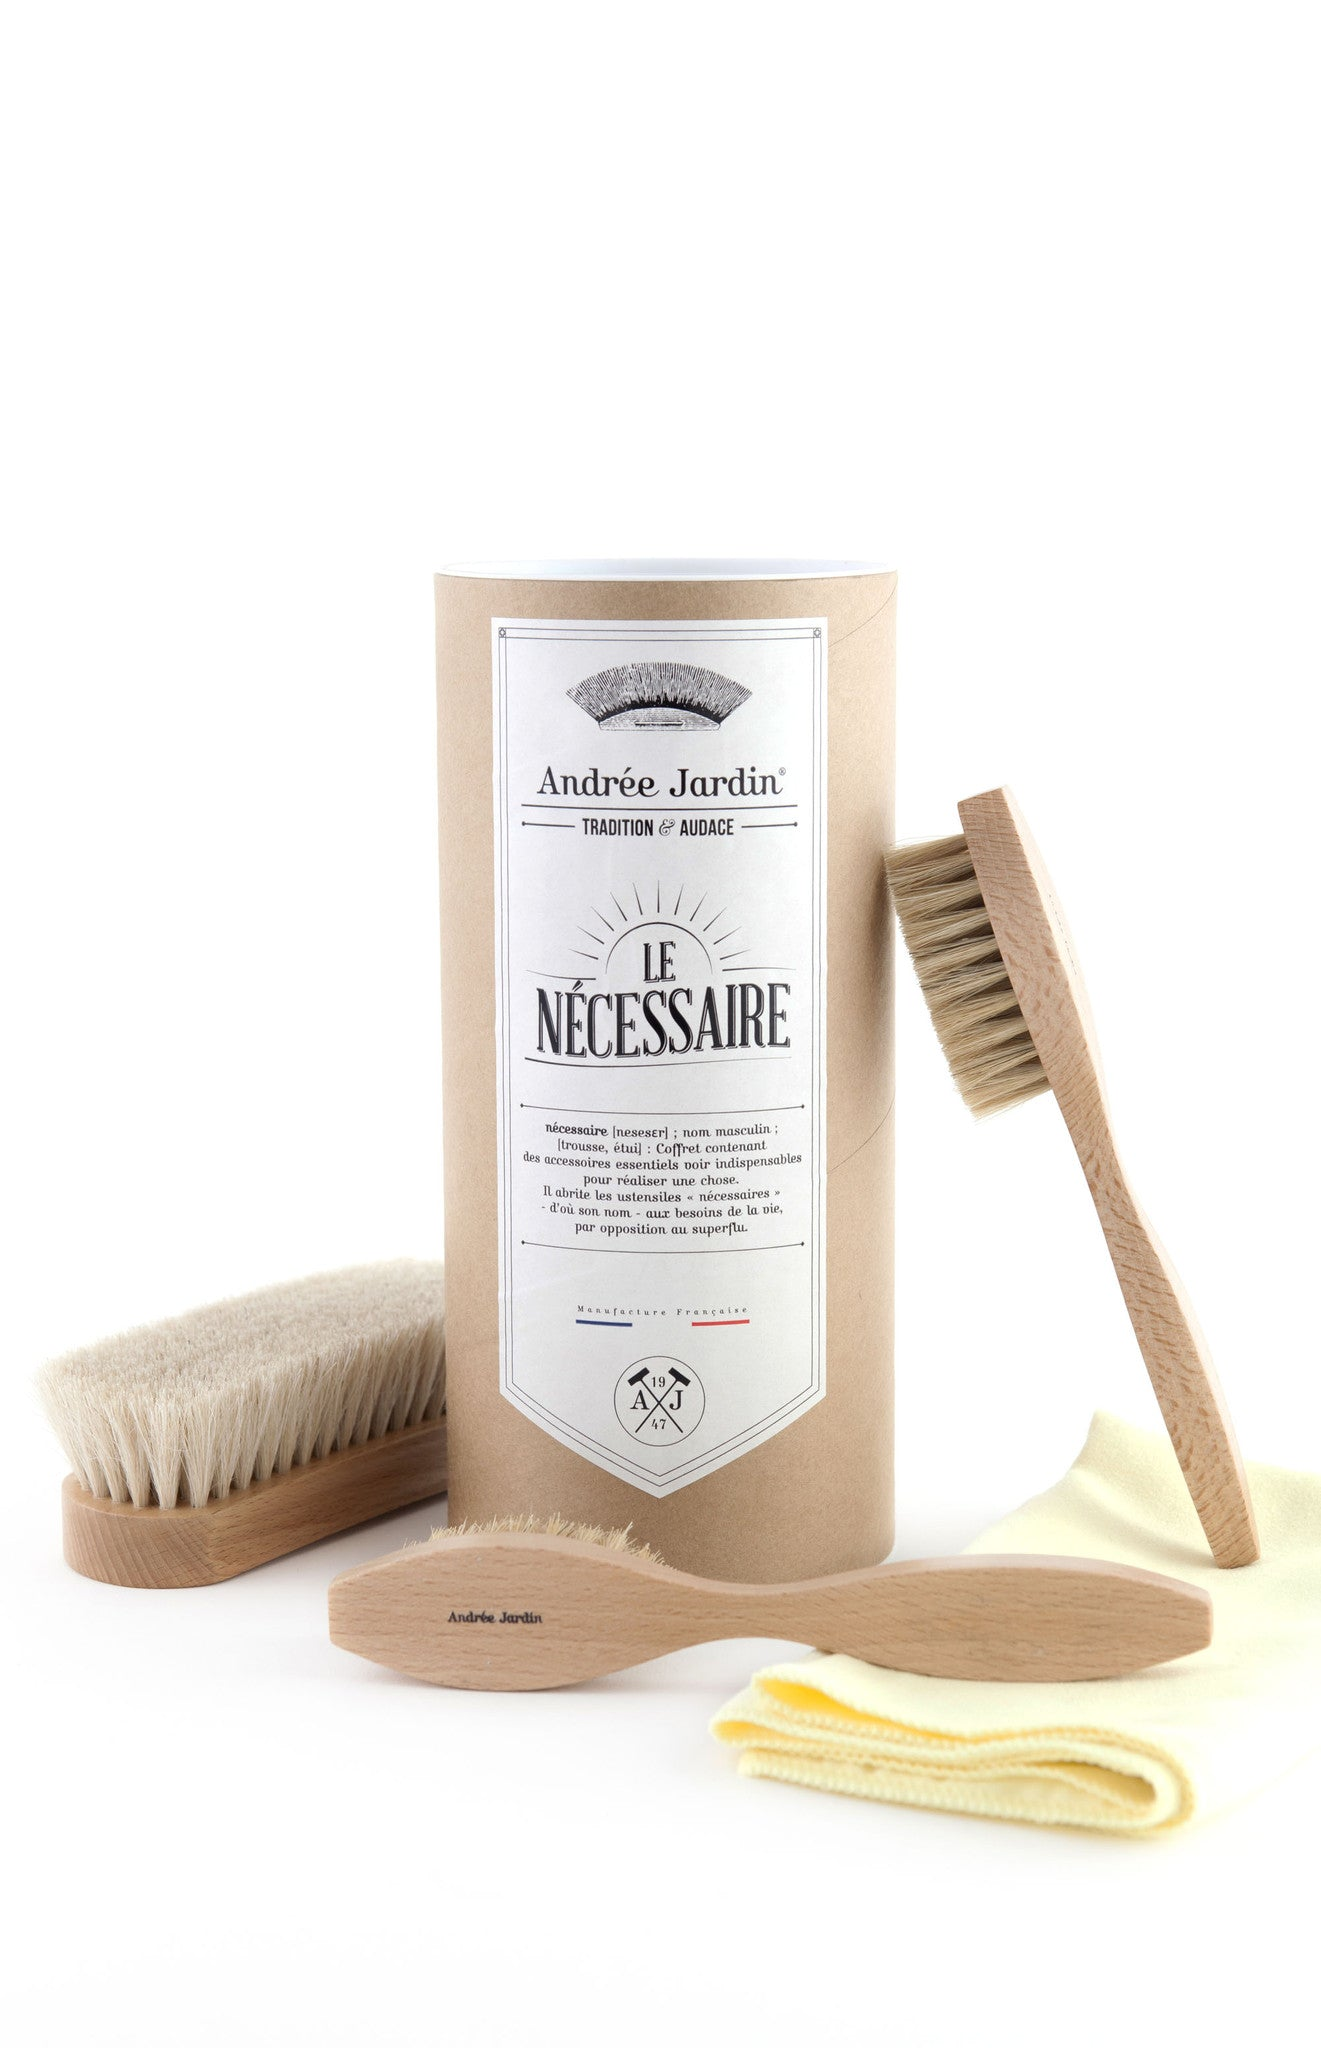 Andrée Jardin Tradition Shoe Care Kit